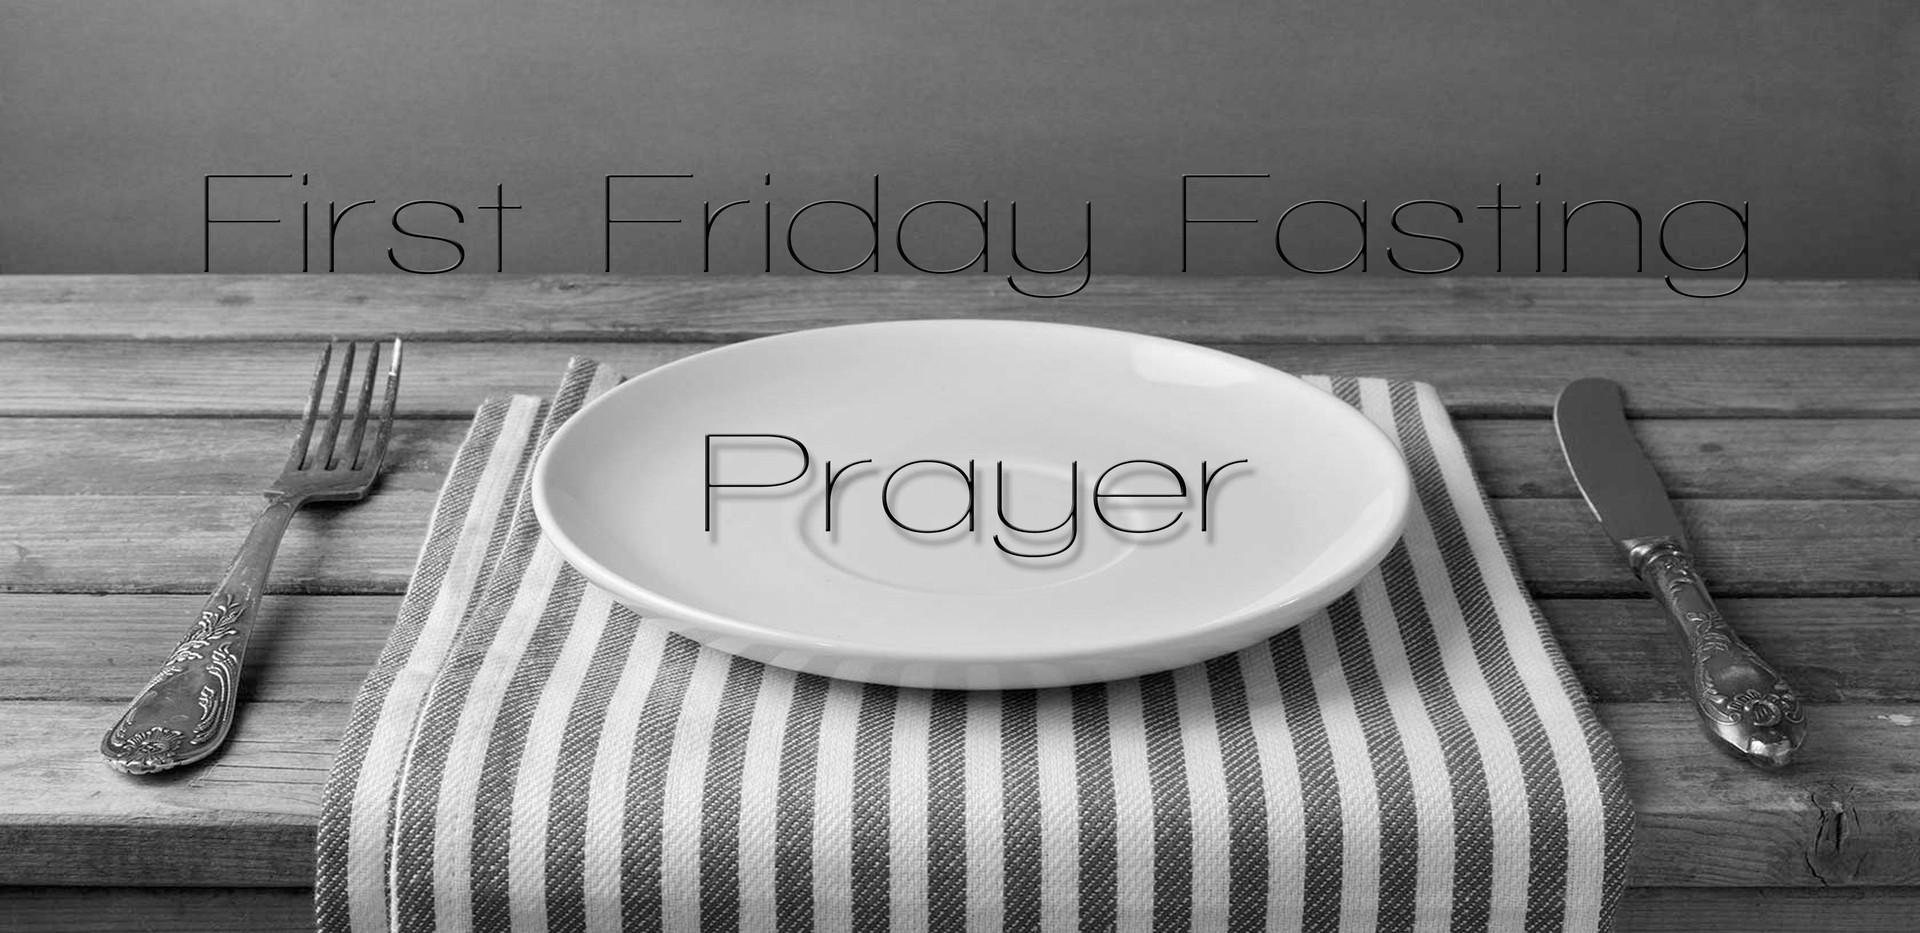 First Friday Fast